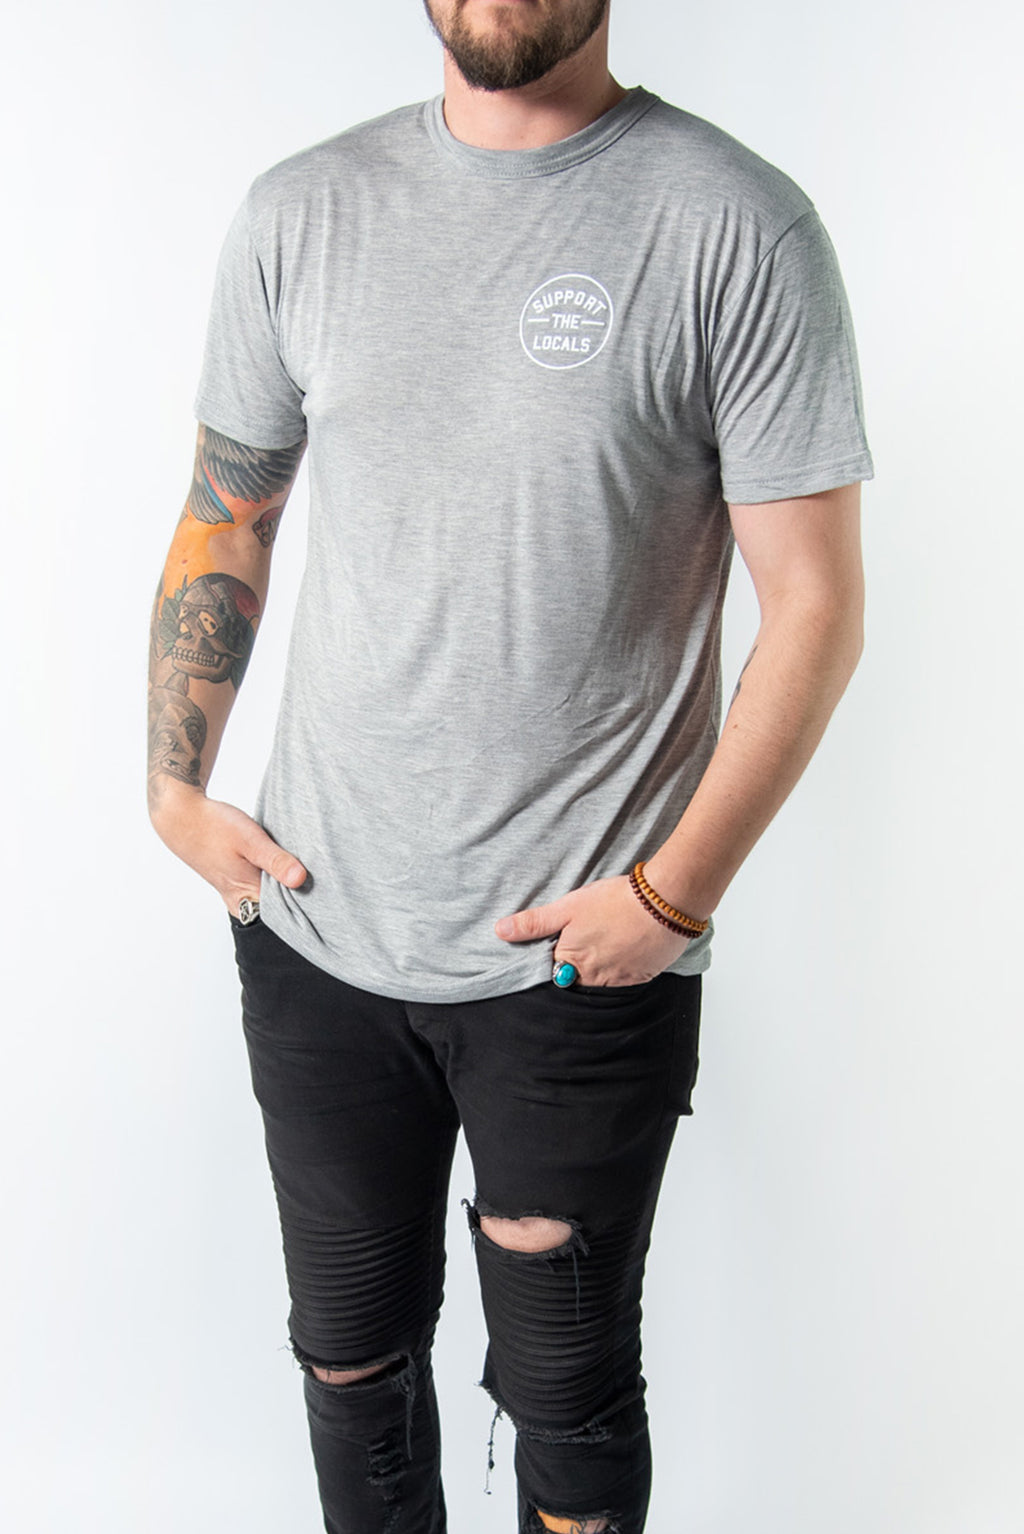 ORIGINAL LOGO T-SHIRT GREY